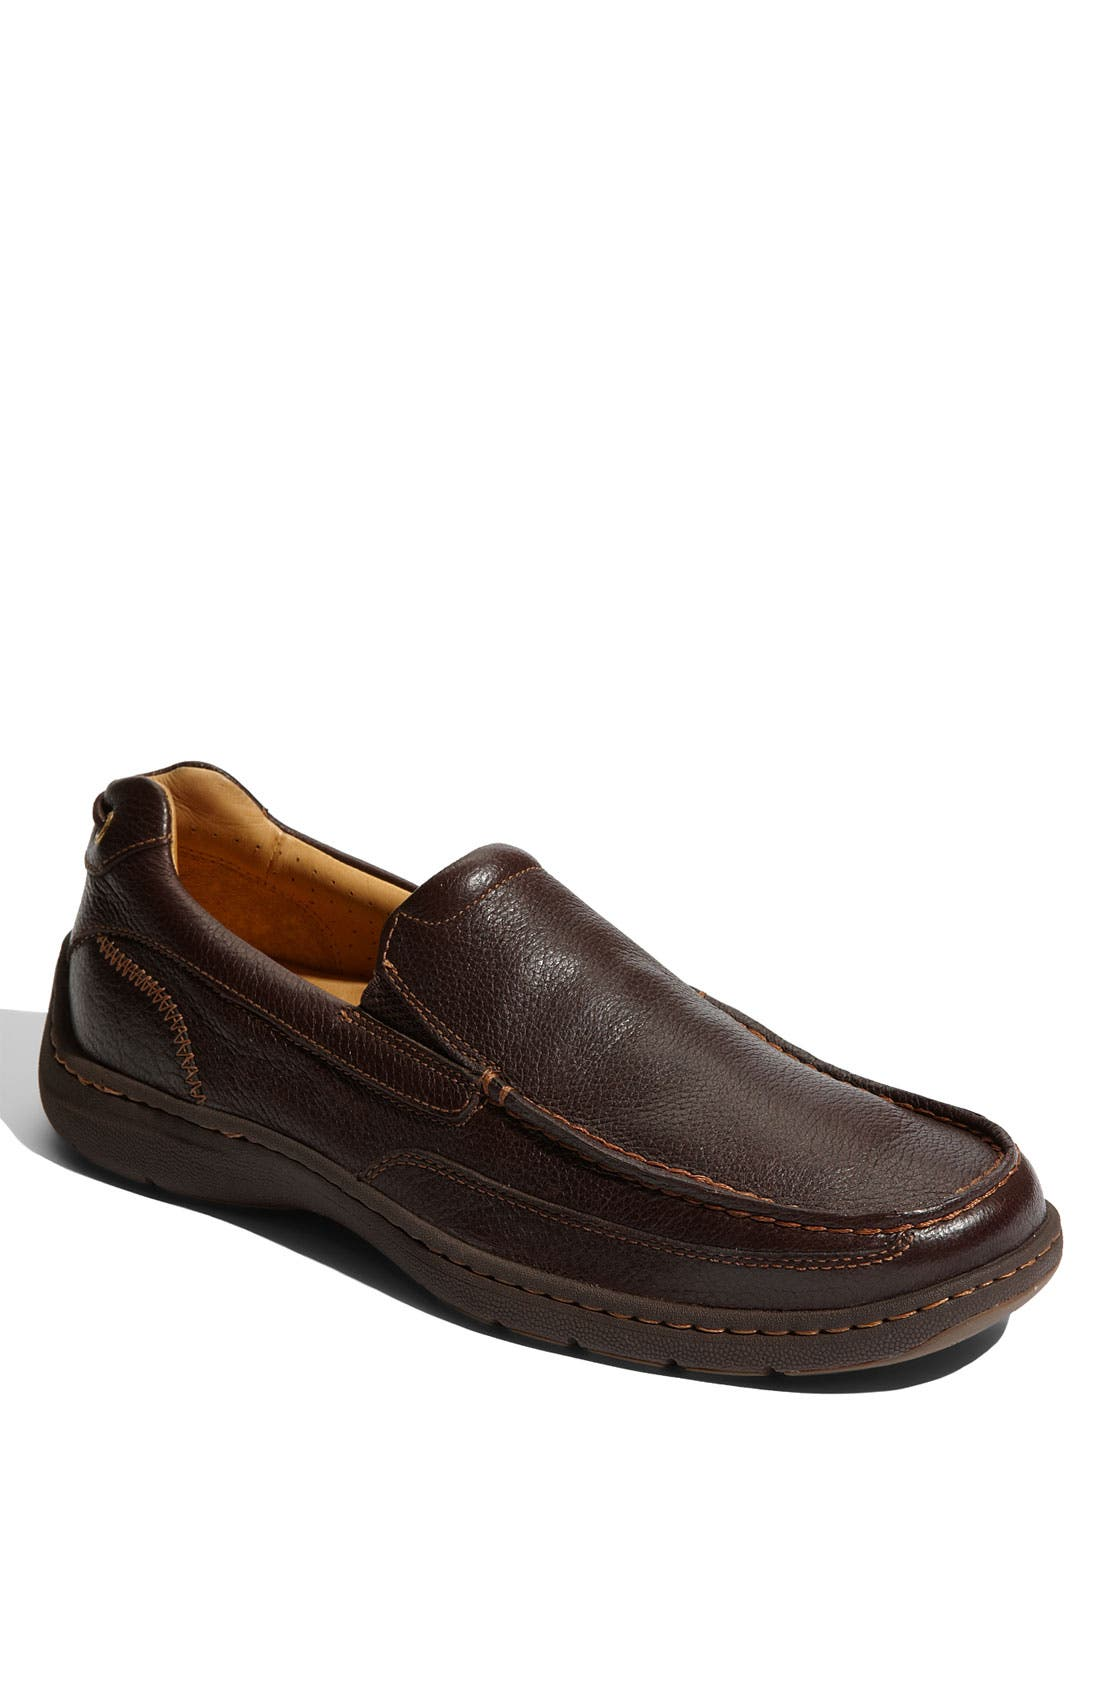 Alternate Image 1 Selected - Sperry Top-Sider® 'Gold Lux' Leather Loafer